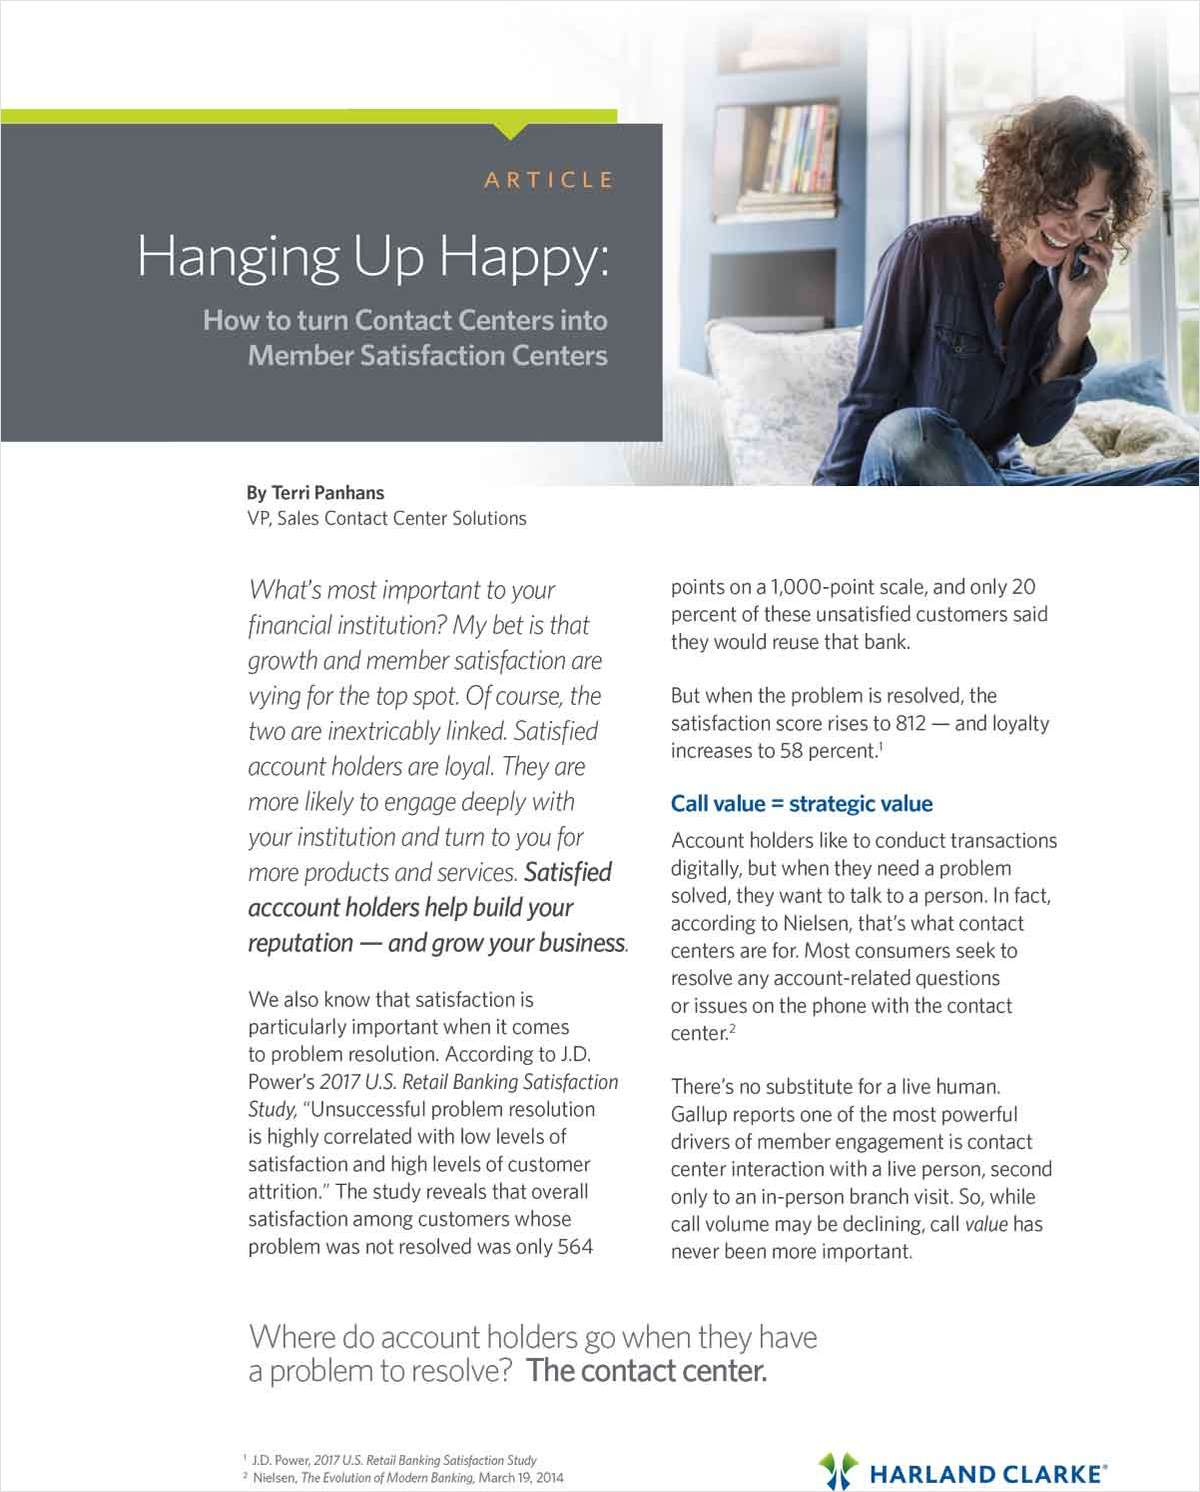 Hanging Up Happy: How to Turn Contact Centers Into Member Satisfaction Centers